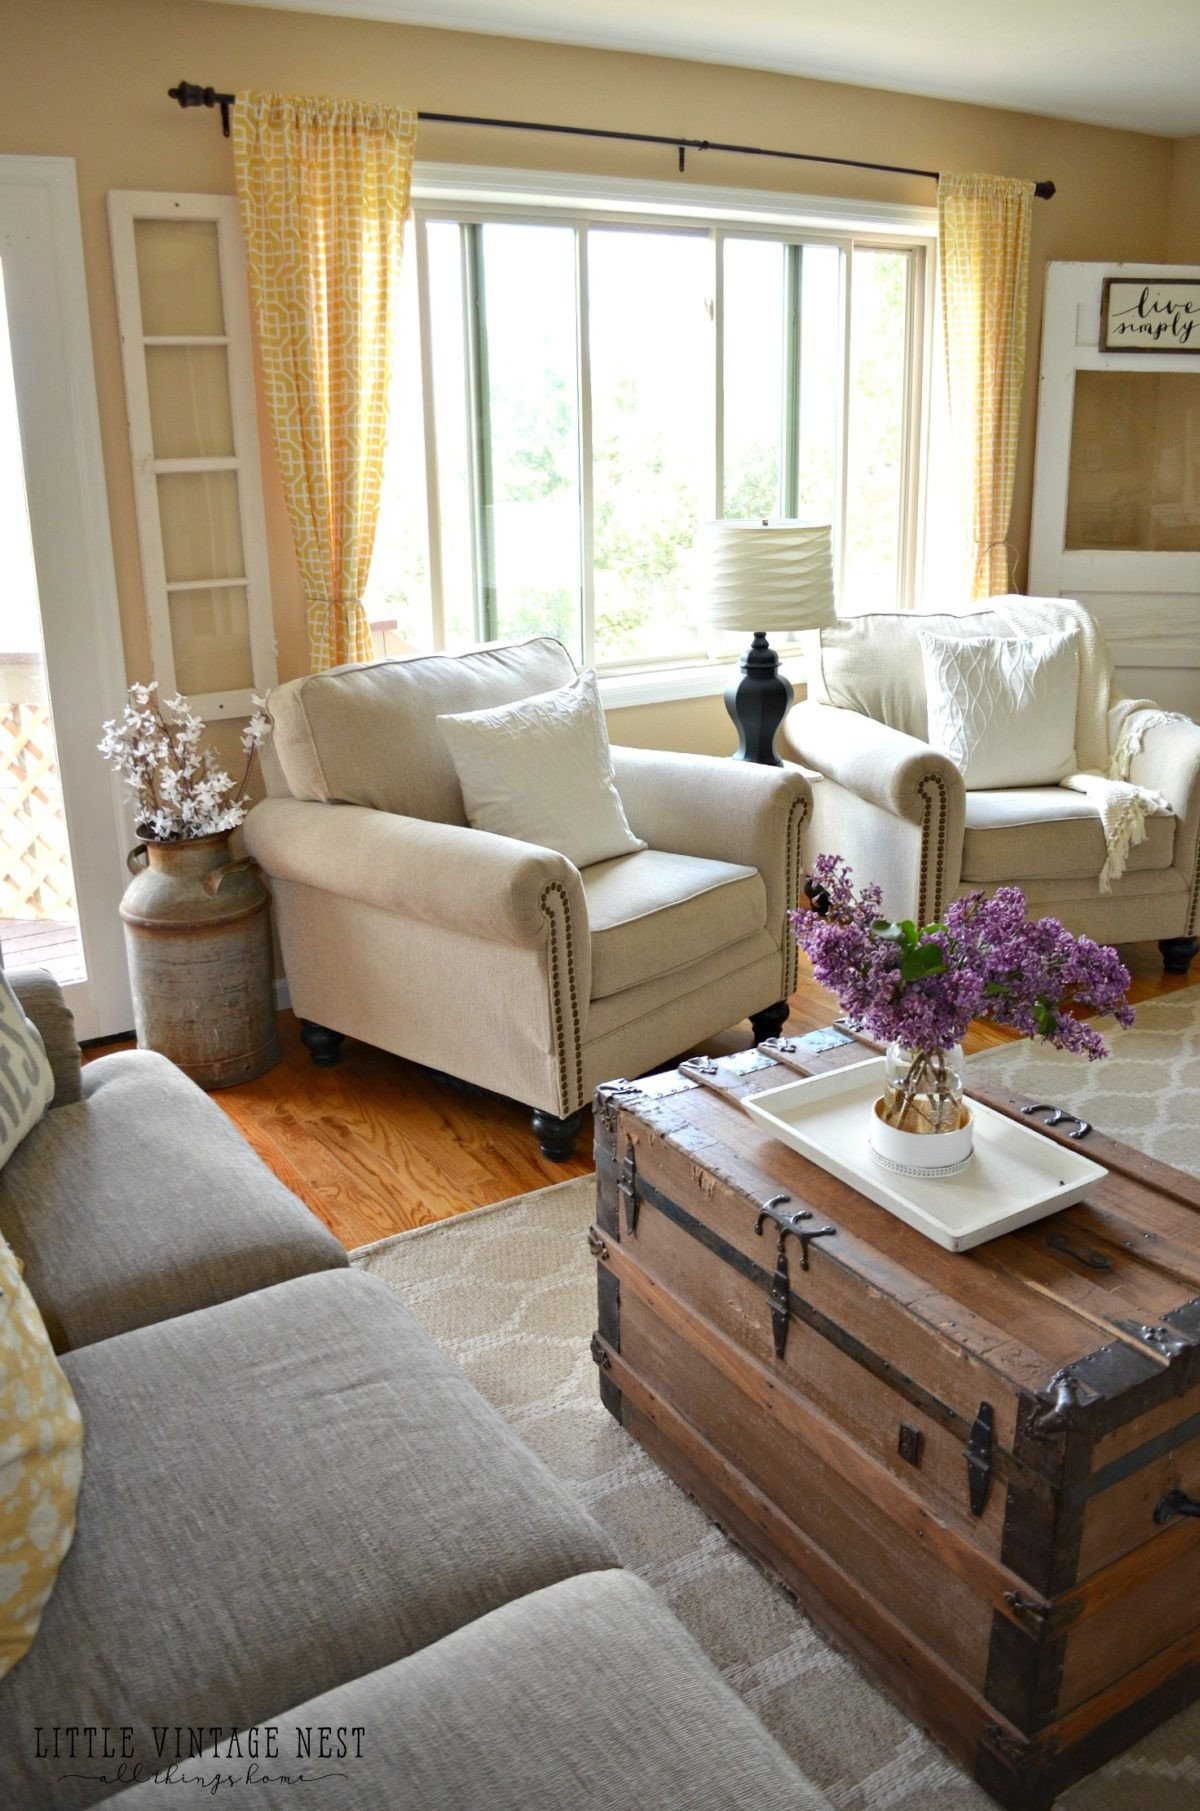 Small Farmhouse Living Room Ideas How I Transitioned to Farmhouse Style Little Vintage Nest